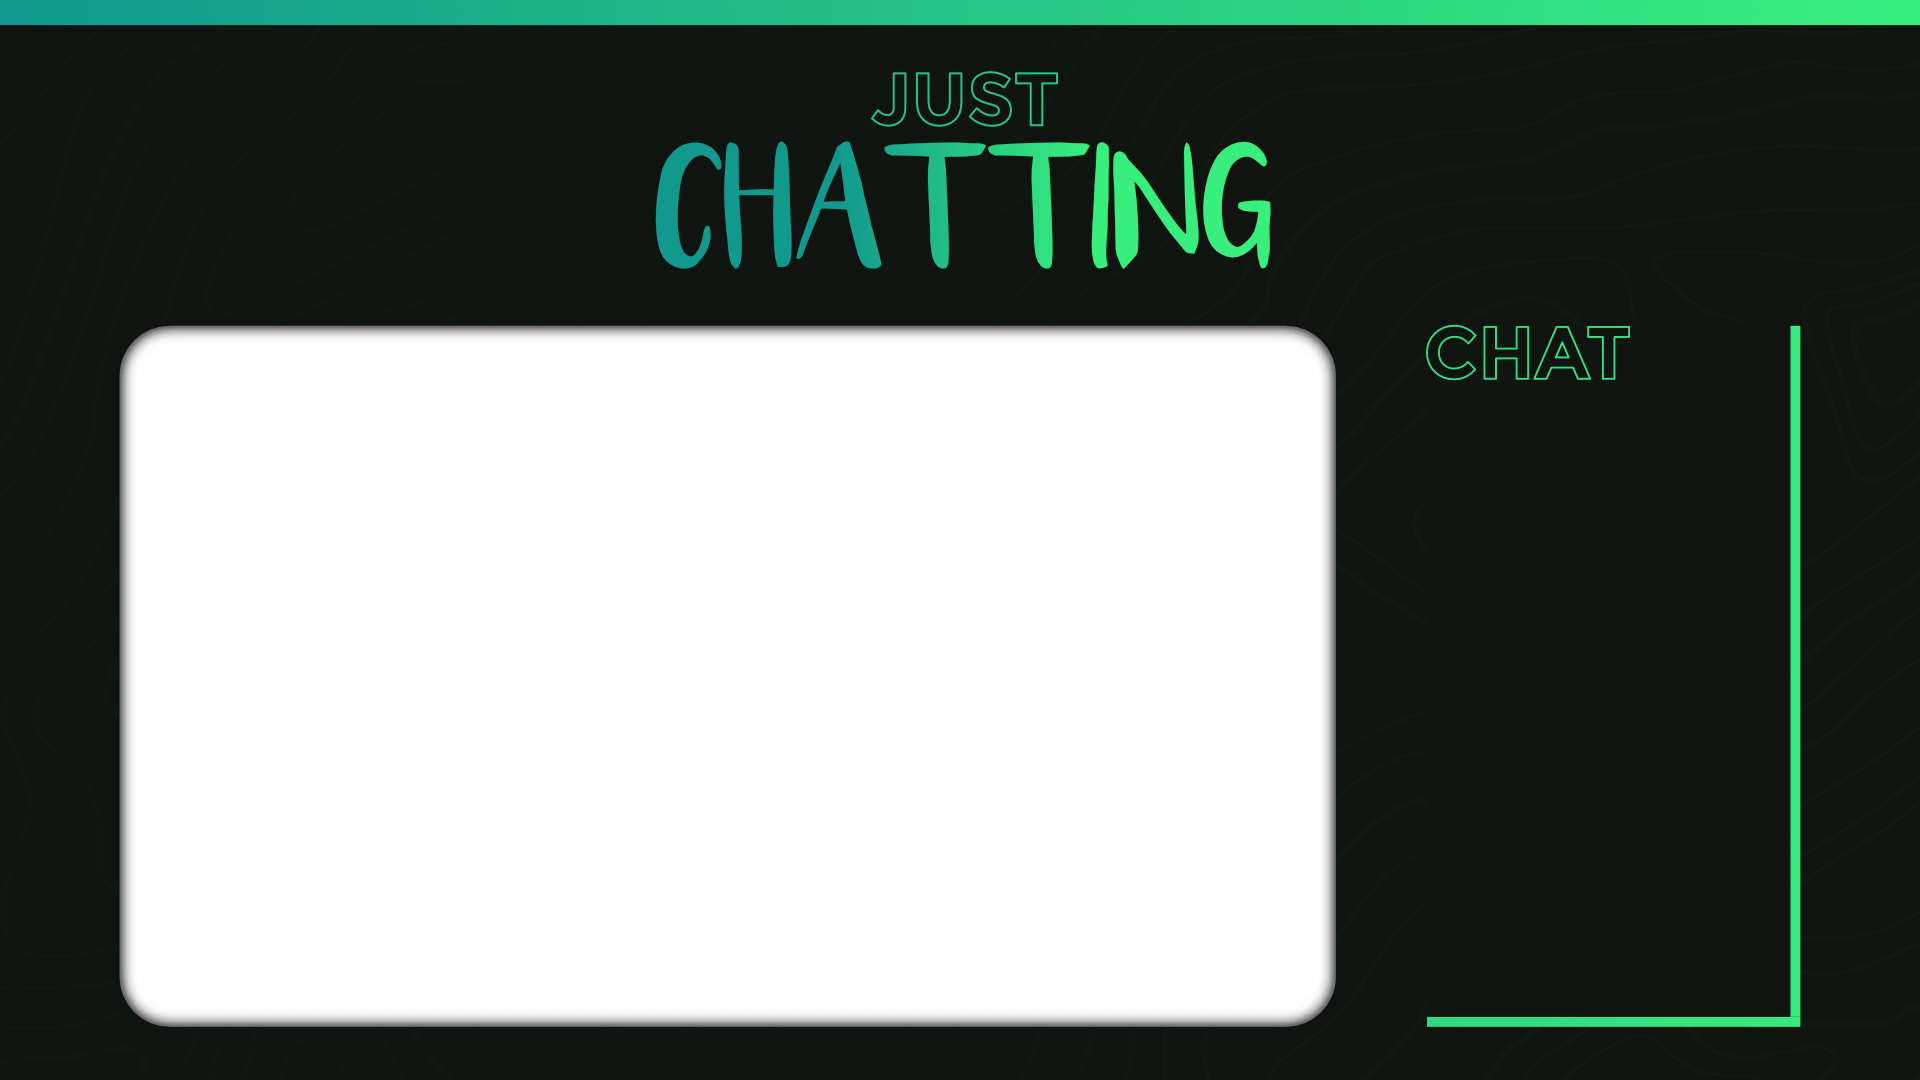 justchatting3